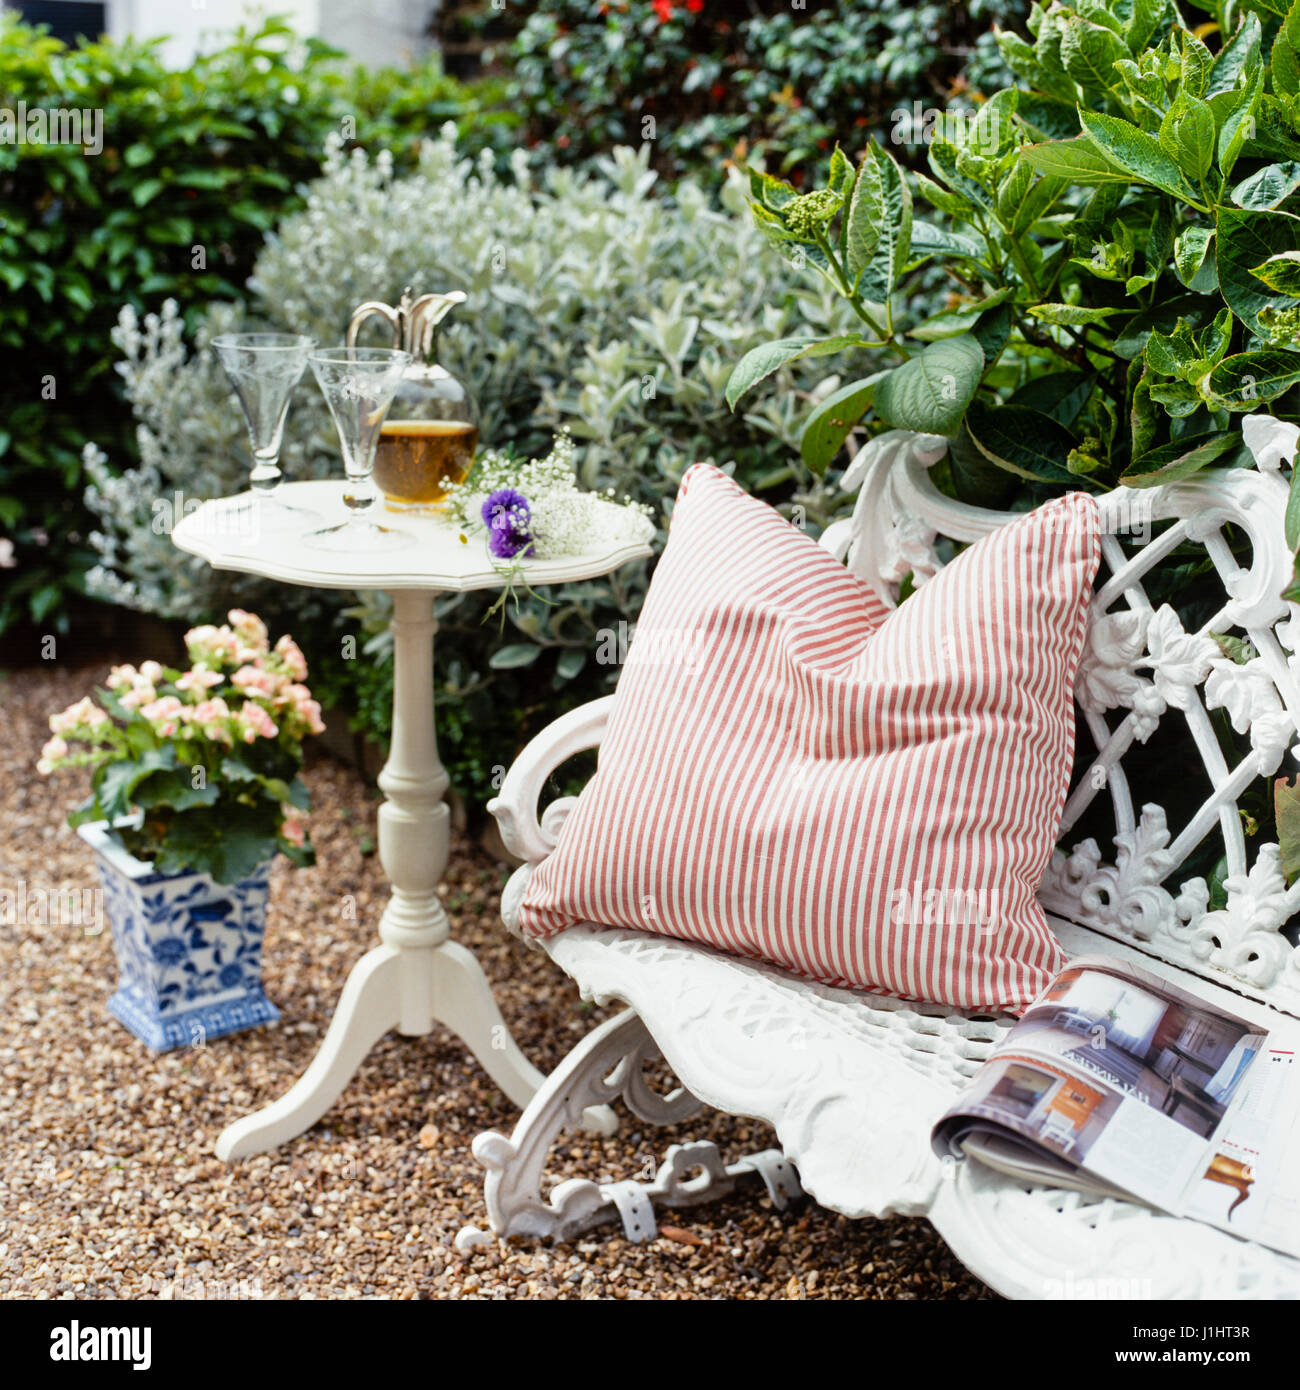 Striped cushion on bench. - Stock Image